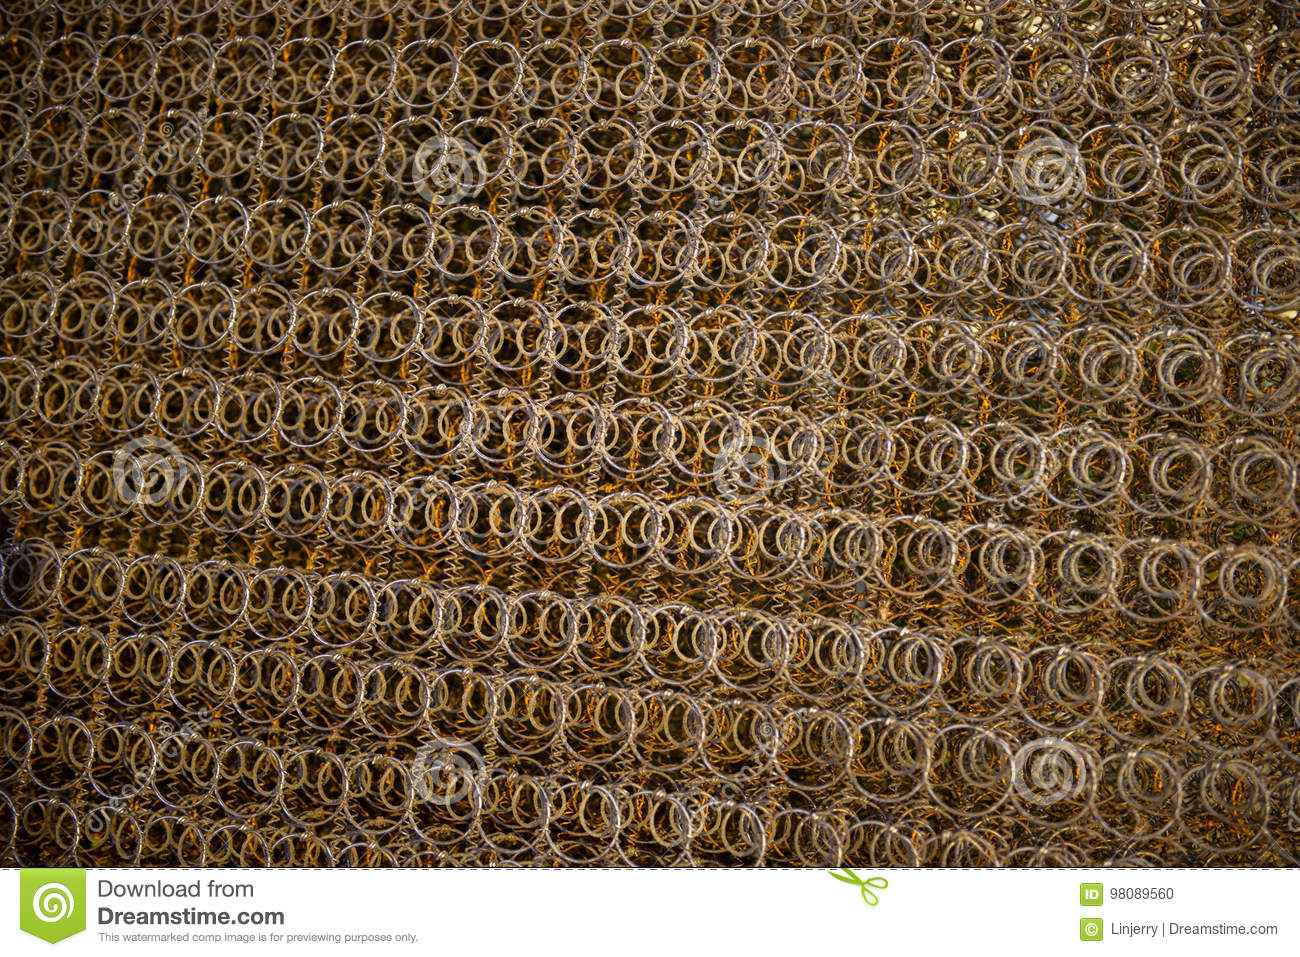 Rusty Iron Wire Fence Made From Old Mattress Stock Photo Image Of Mattress Grid 98089560